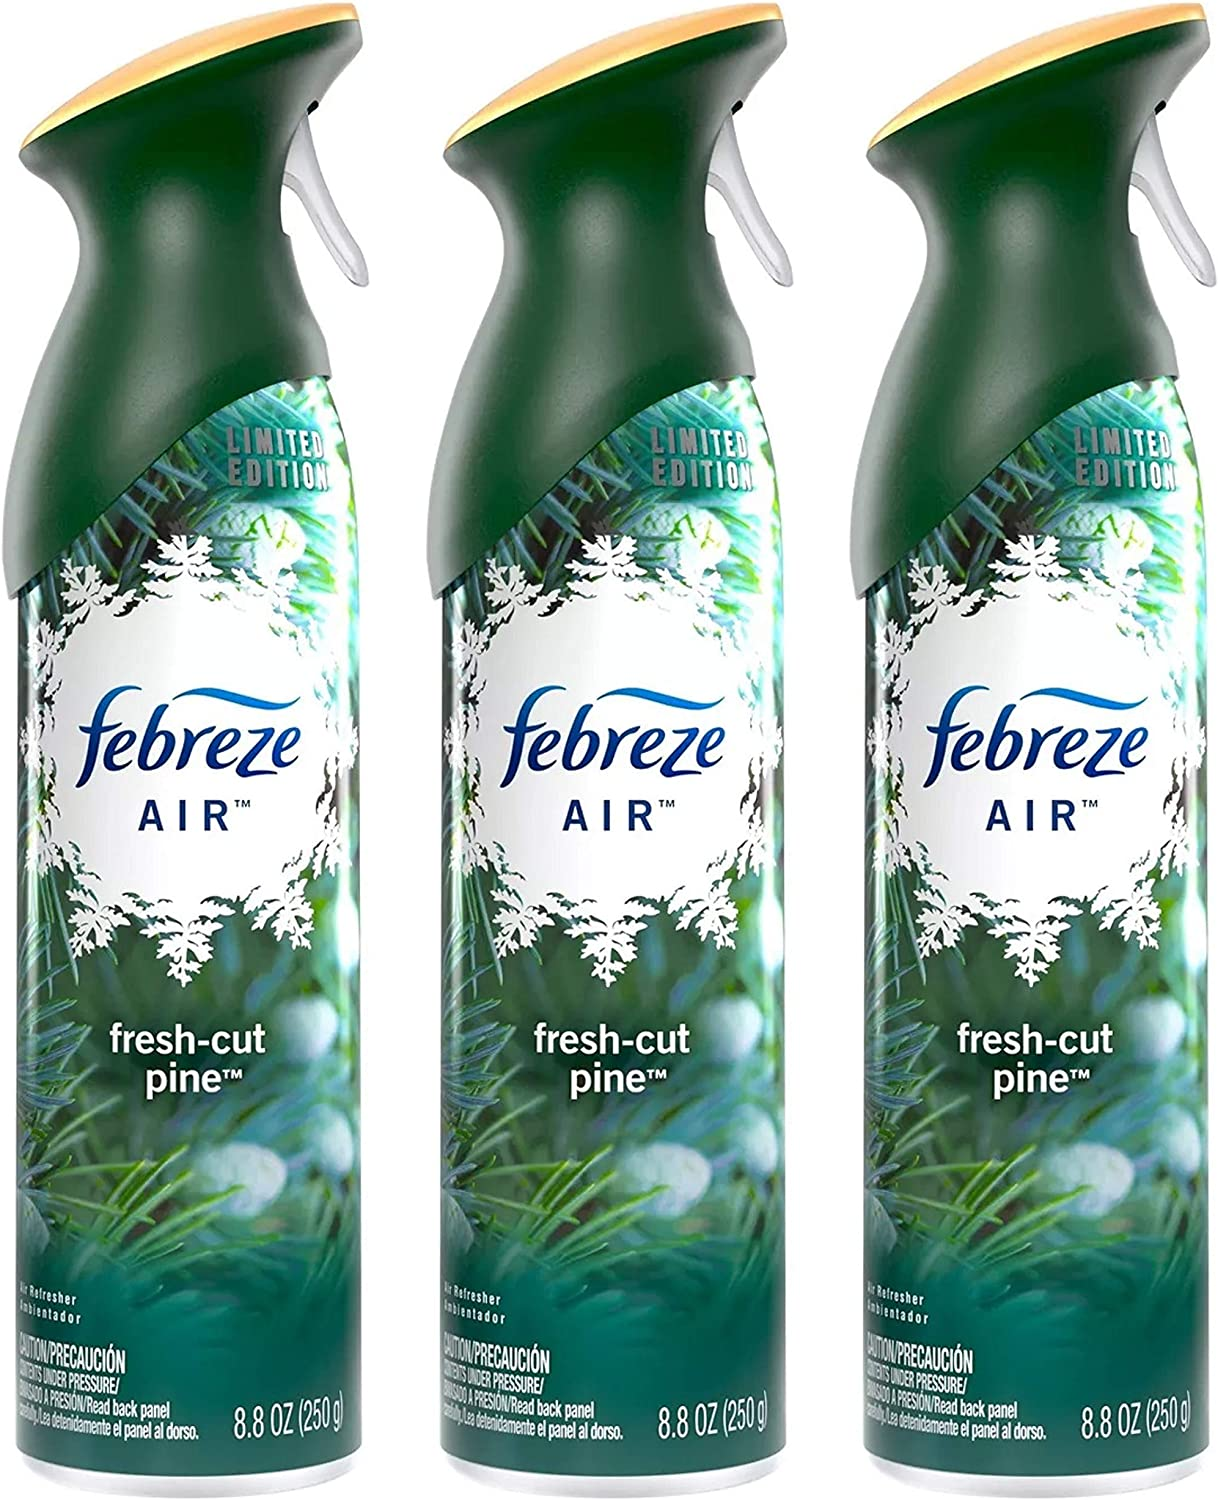 Febreze Air - Air Freshener Spray - Limited Edition - Winter Collection 2017 - Fresh-Cut Pine - Net Wt. 8.8 OZ (250 g) Per Bottle - Pack of 3 Bottles